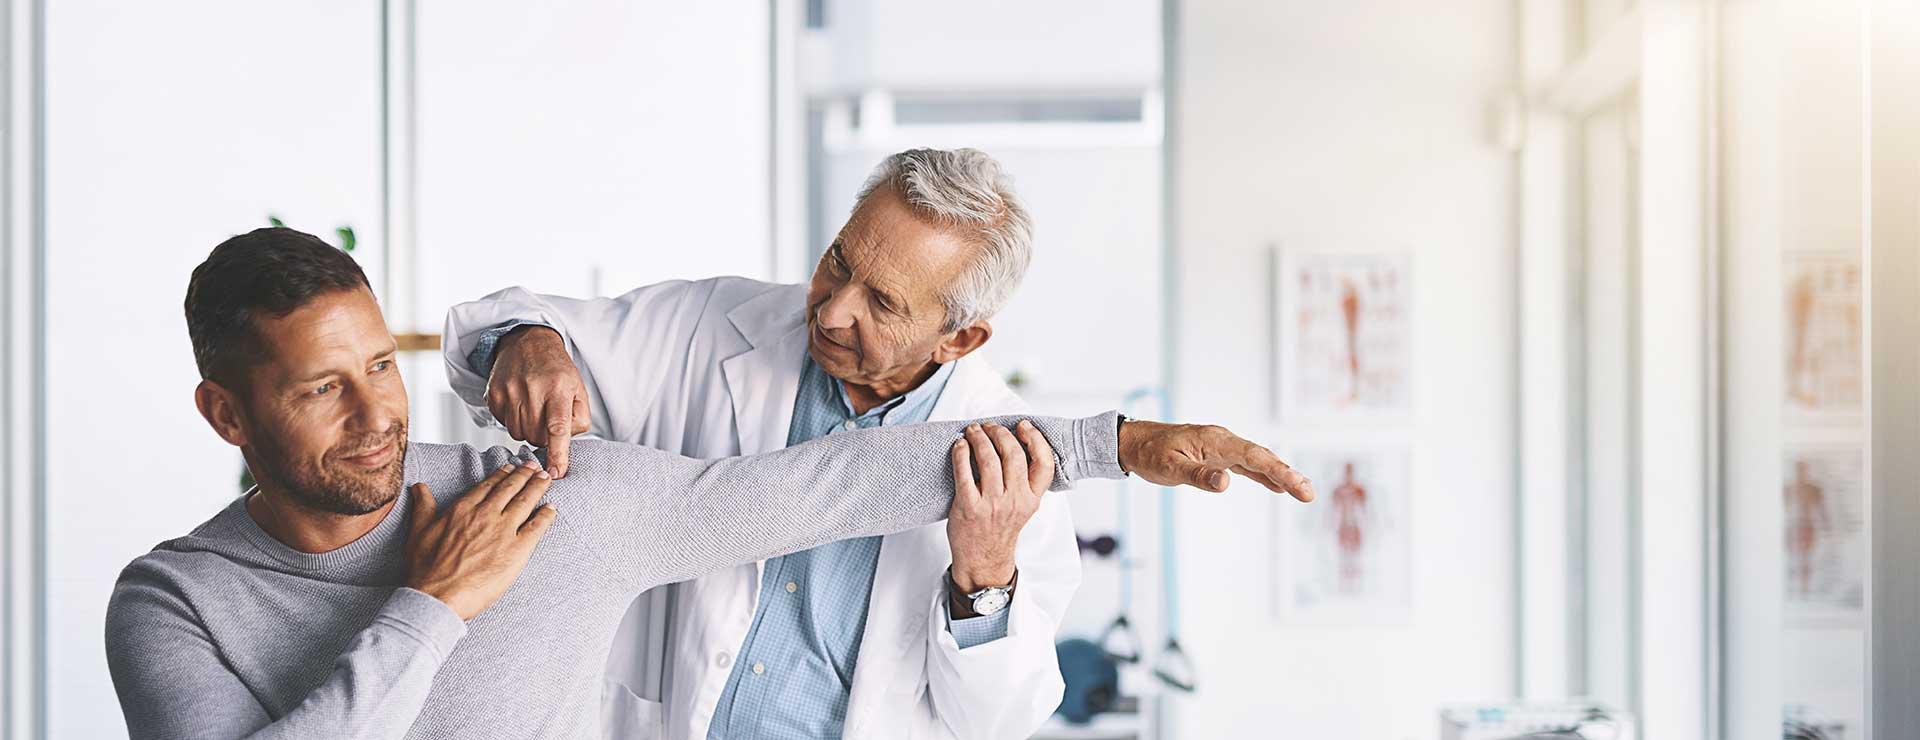 a doctor checks the shoulder and arm joints of male patients